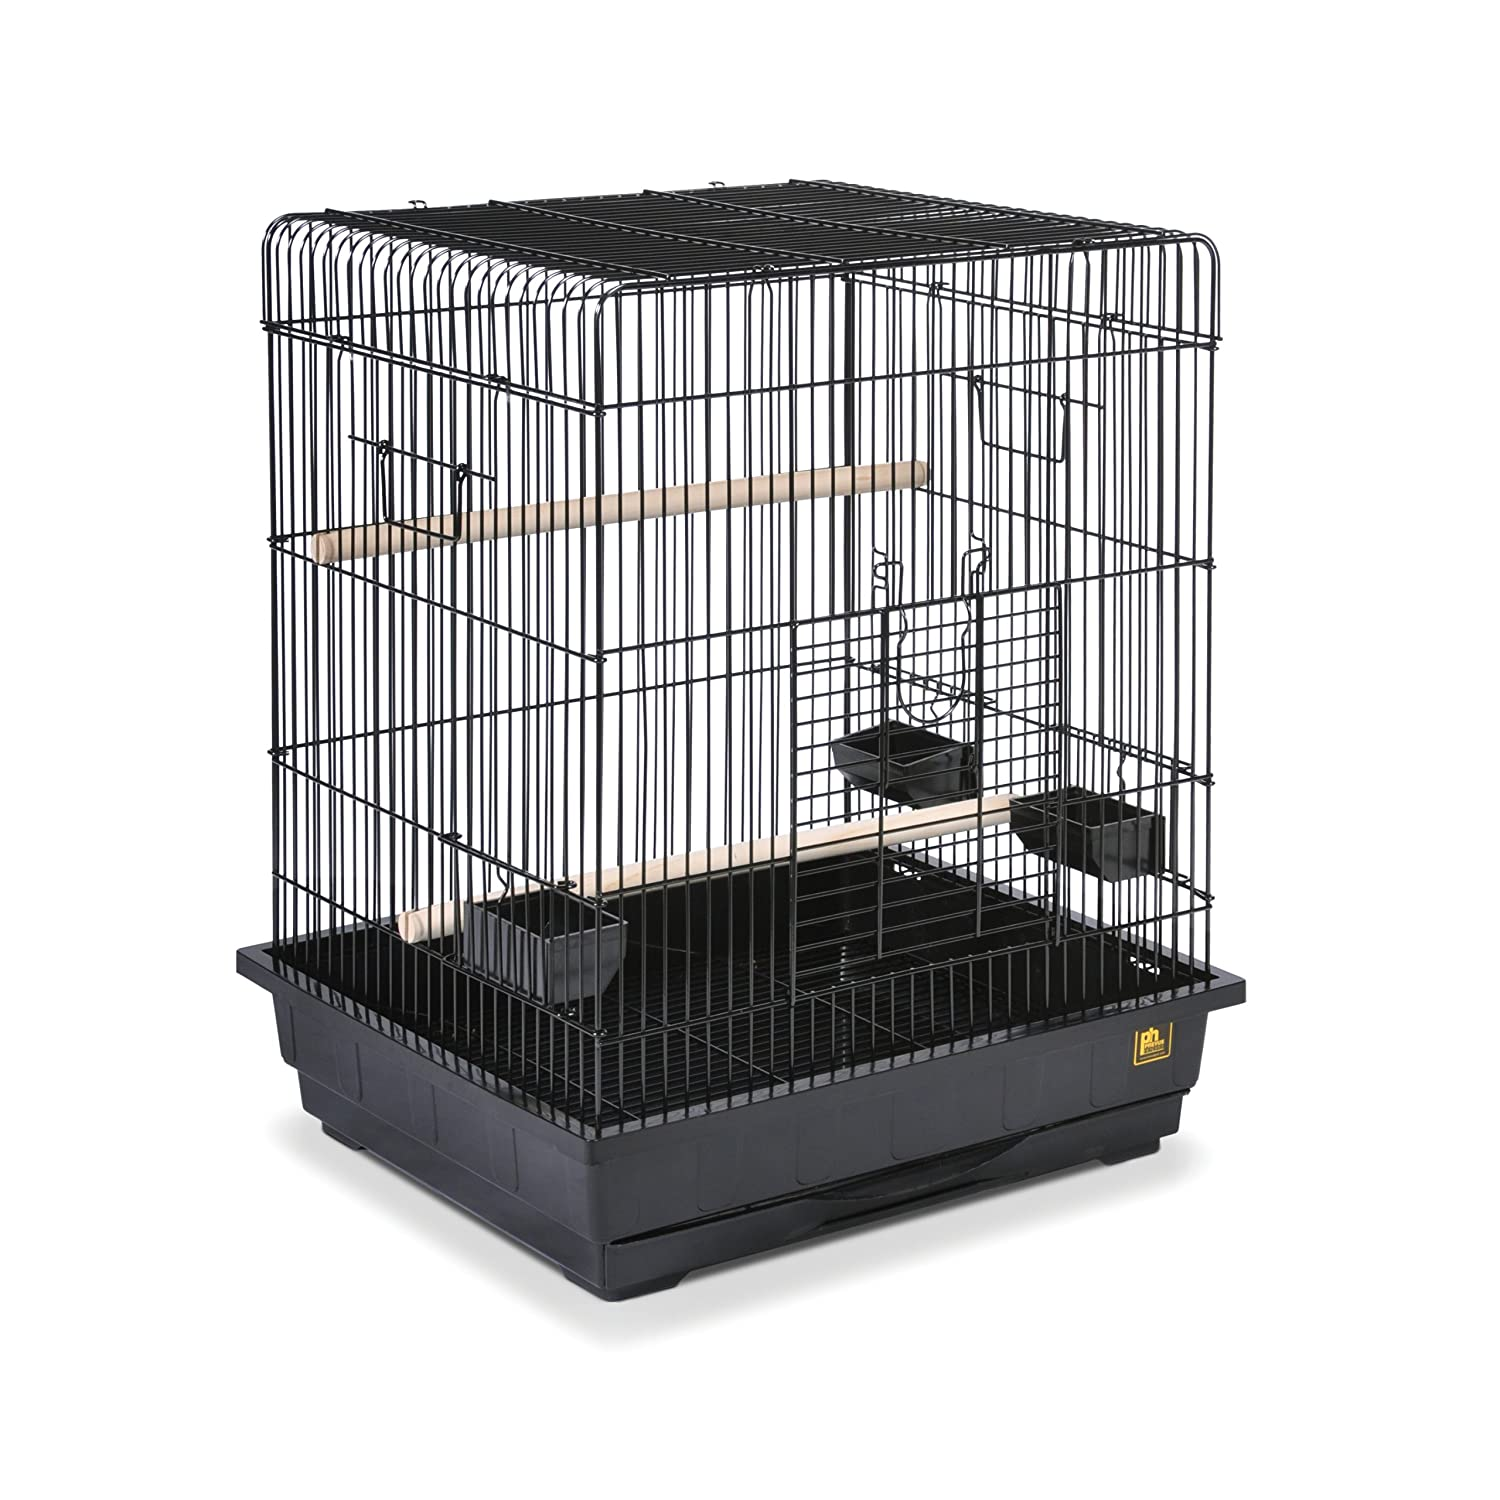 Prevue Pet Products Square Roof Parred Cage, Black